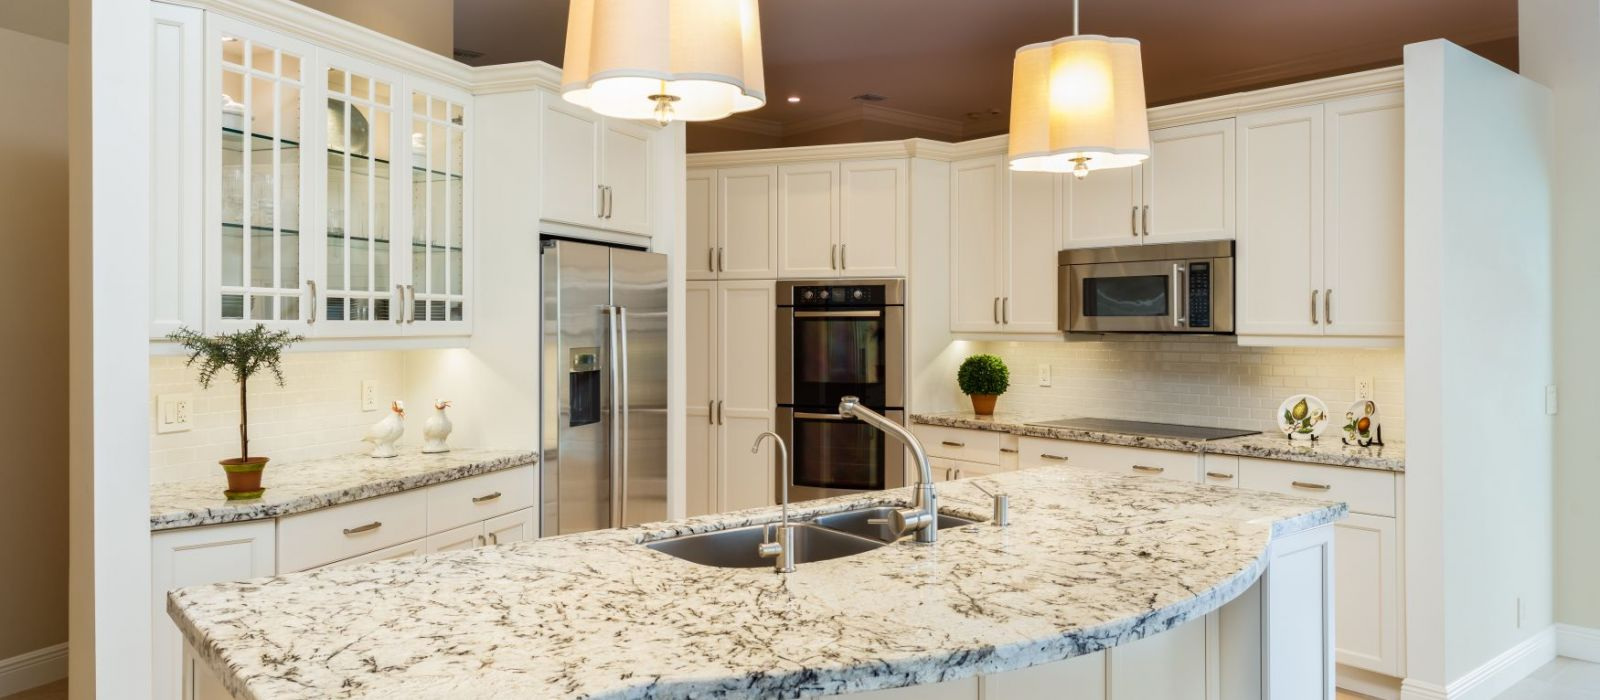 Frugal Kitchens Countertops